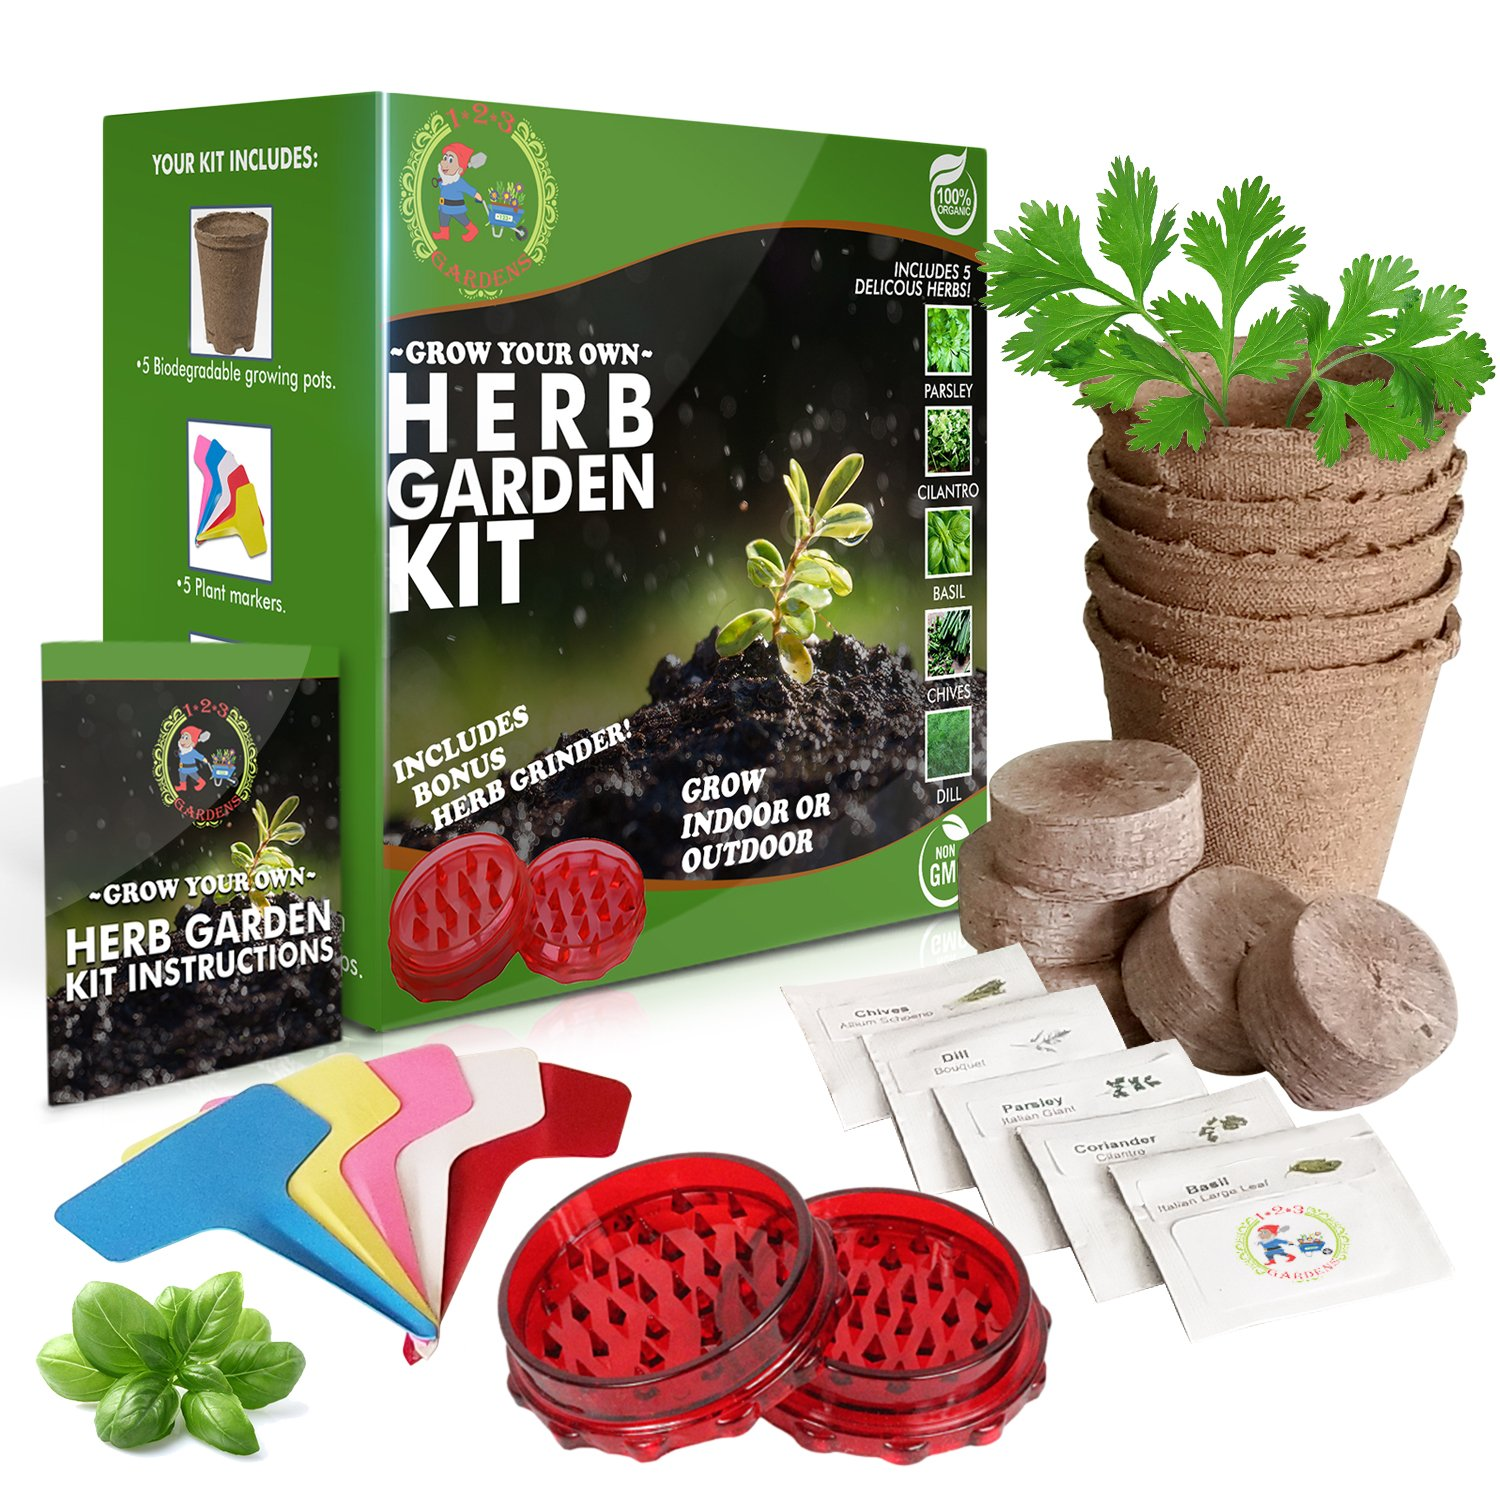 1-2-3 GARDENS- HERB GARDEN STARTER KIT-Grow 5 Delicious Herbs at Home (Parsley, Basil, Chives, Dill,Cilantro)Includes BONUS Herb Grinder- Grow Indoors or Outdoors-Organic and Non-GMO | Great Gift Idea by 1-2-3 GARDENS